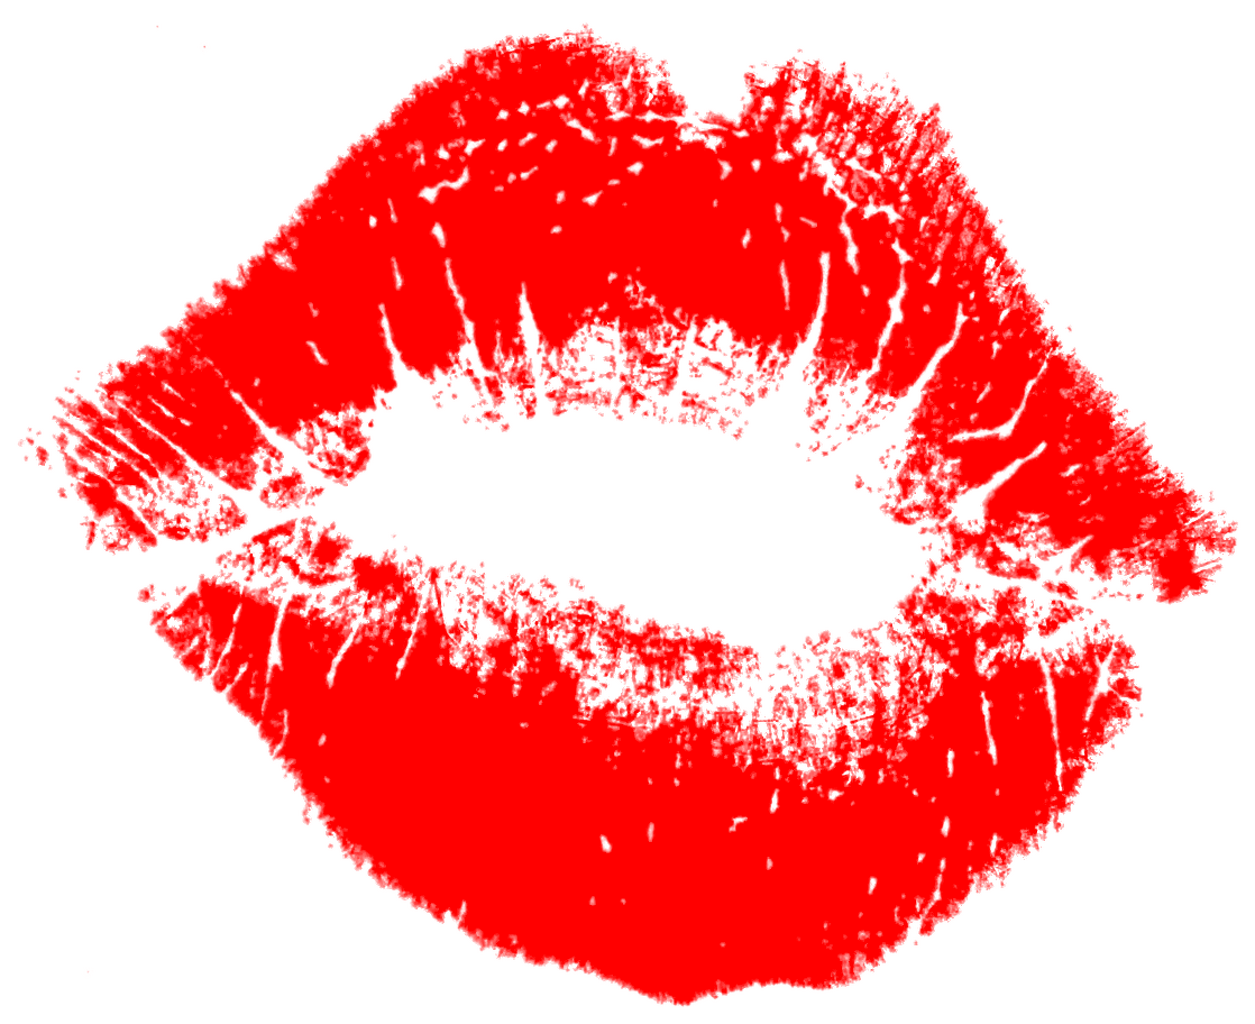 Lipstick clipart kissy lip Mouth of Lips Isolated mouth